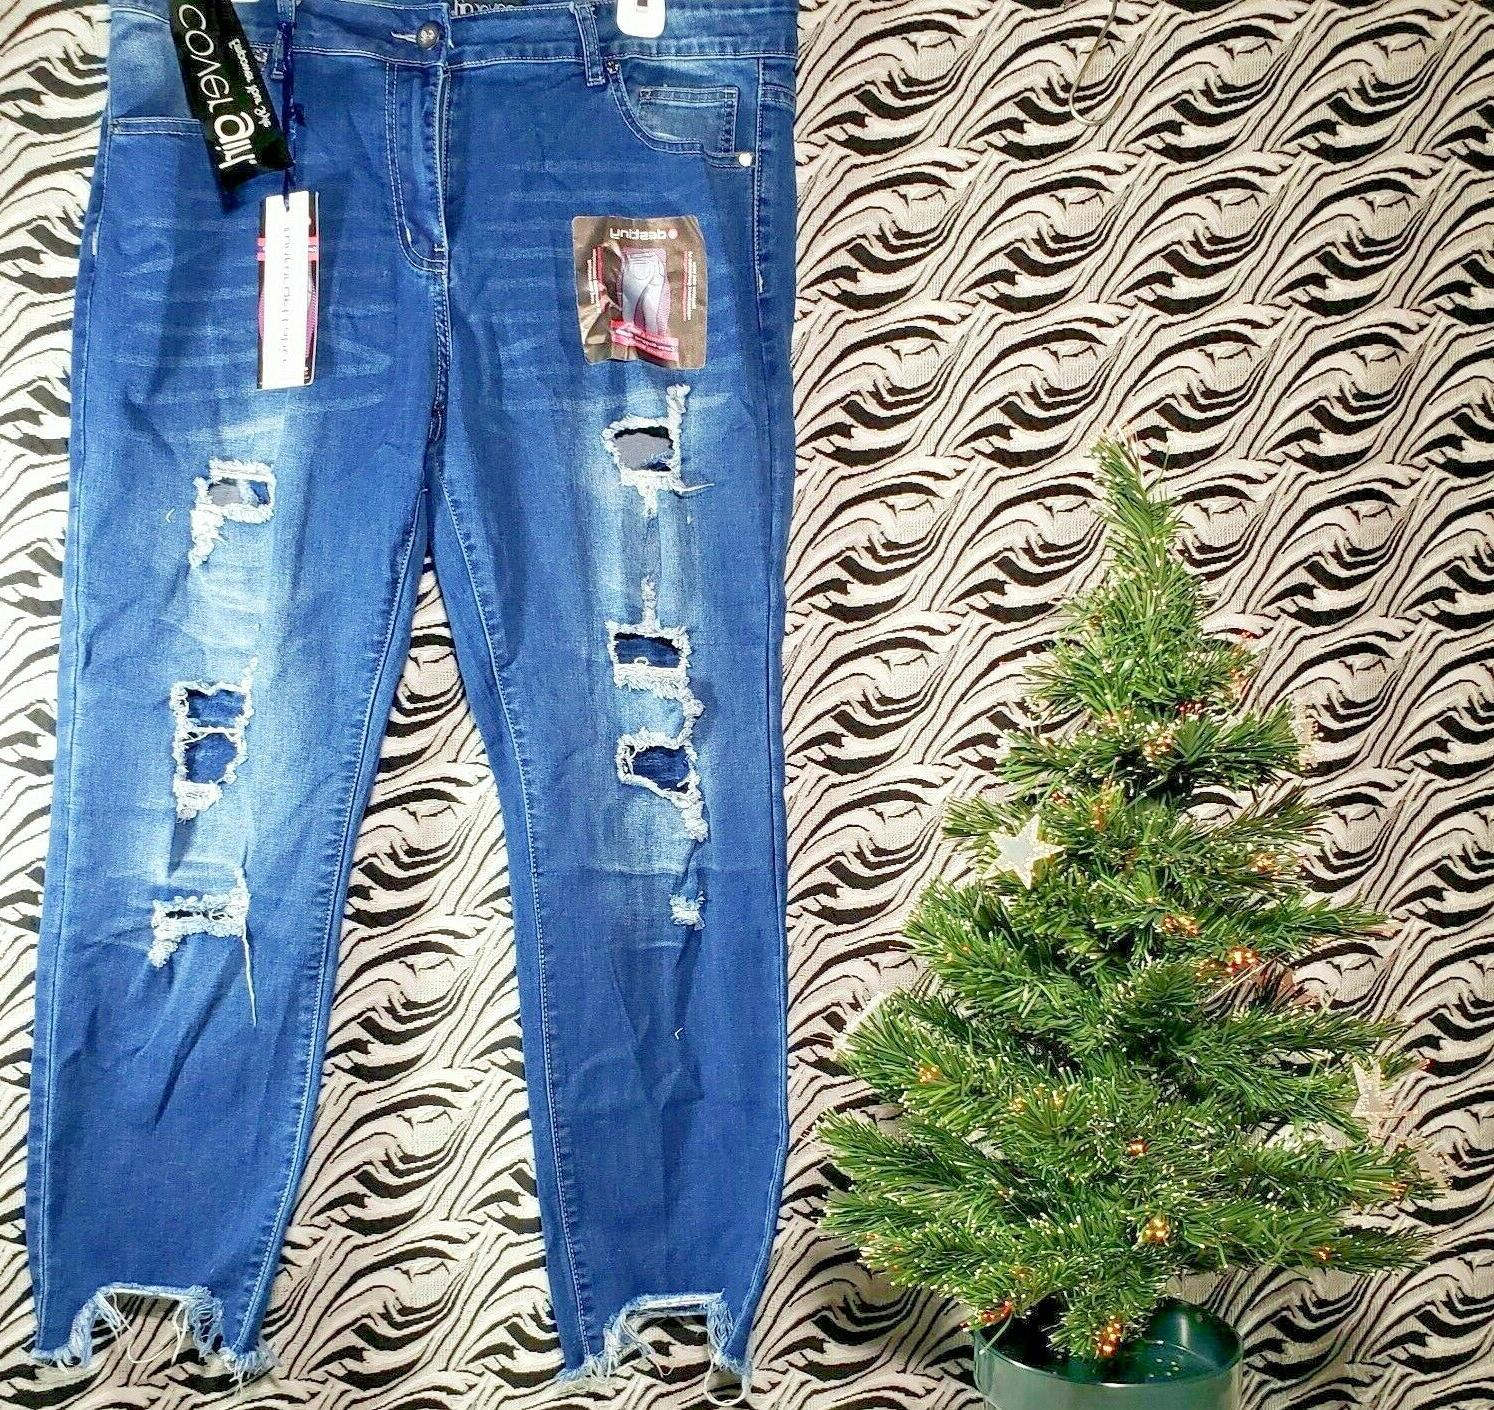 cg jeans high waisted ripped patched blue